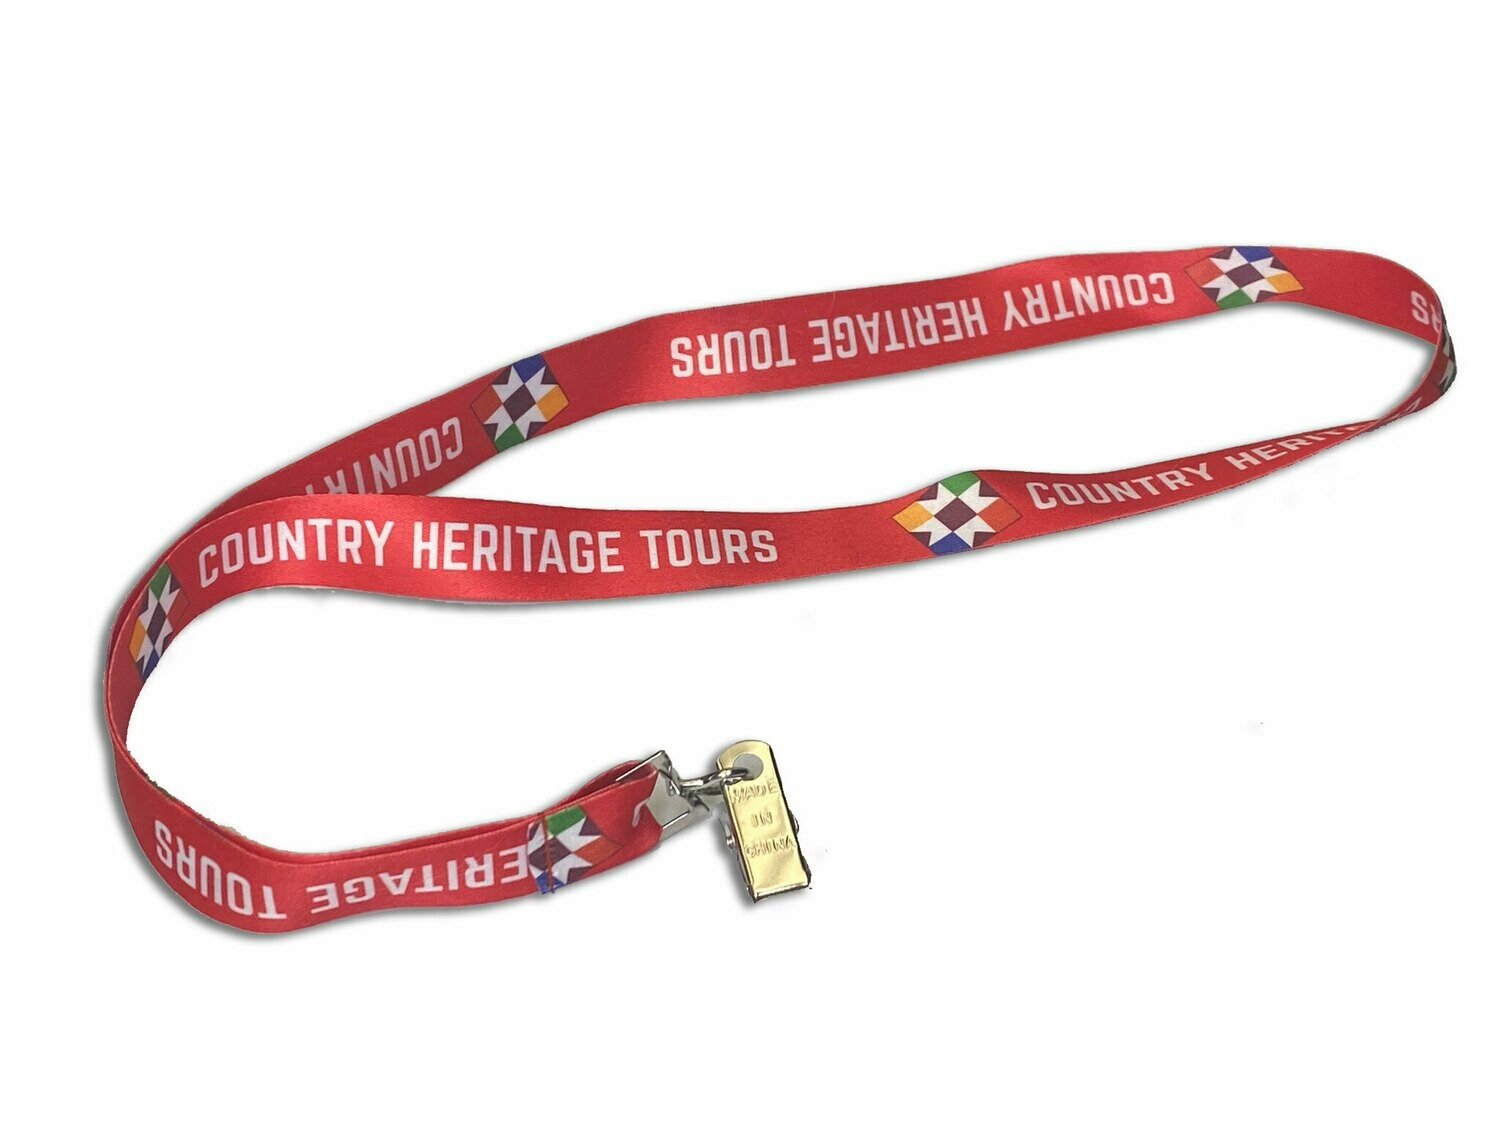 Country Heritage Tours Lanyard